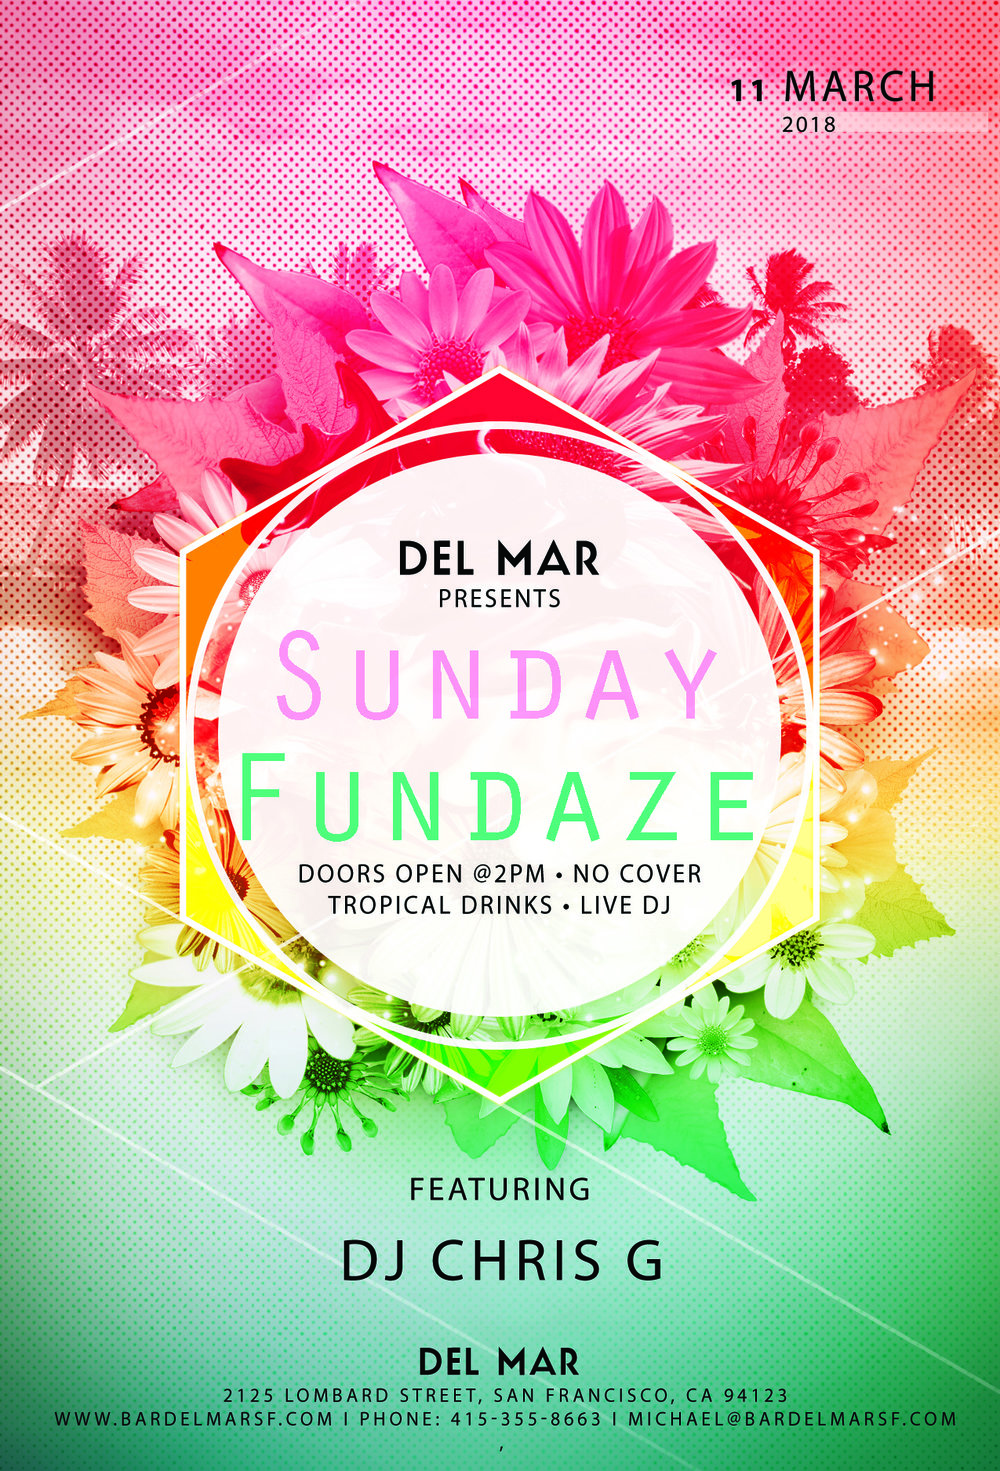 Sunday Funday Tropical Flyer March 4th 2018 dj name.jpg